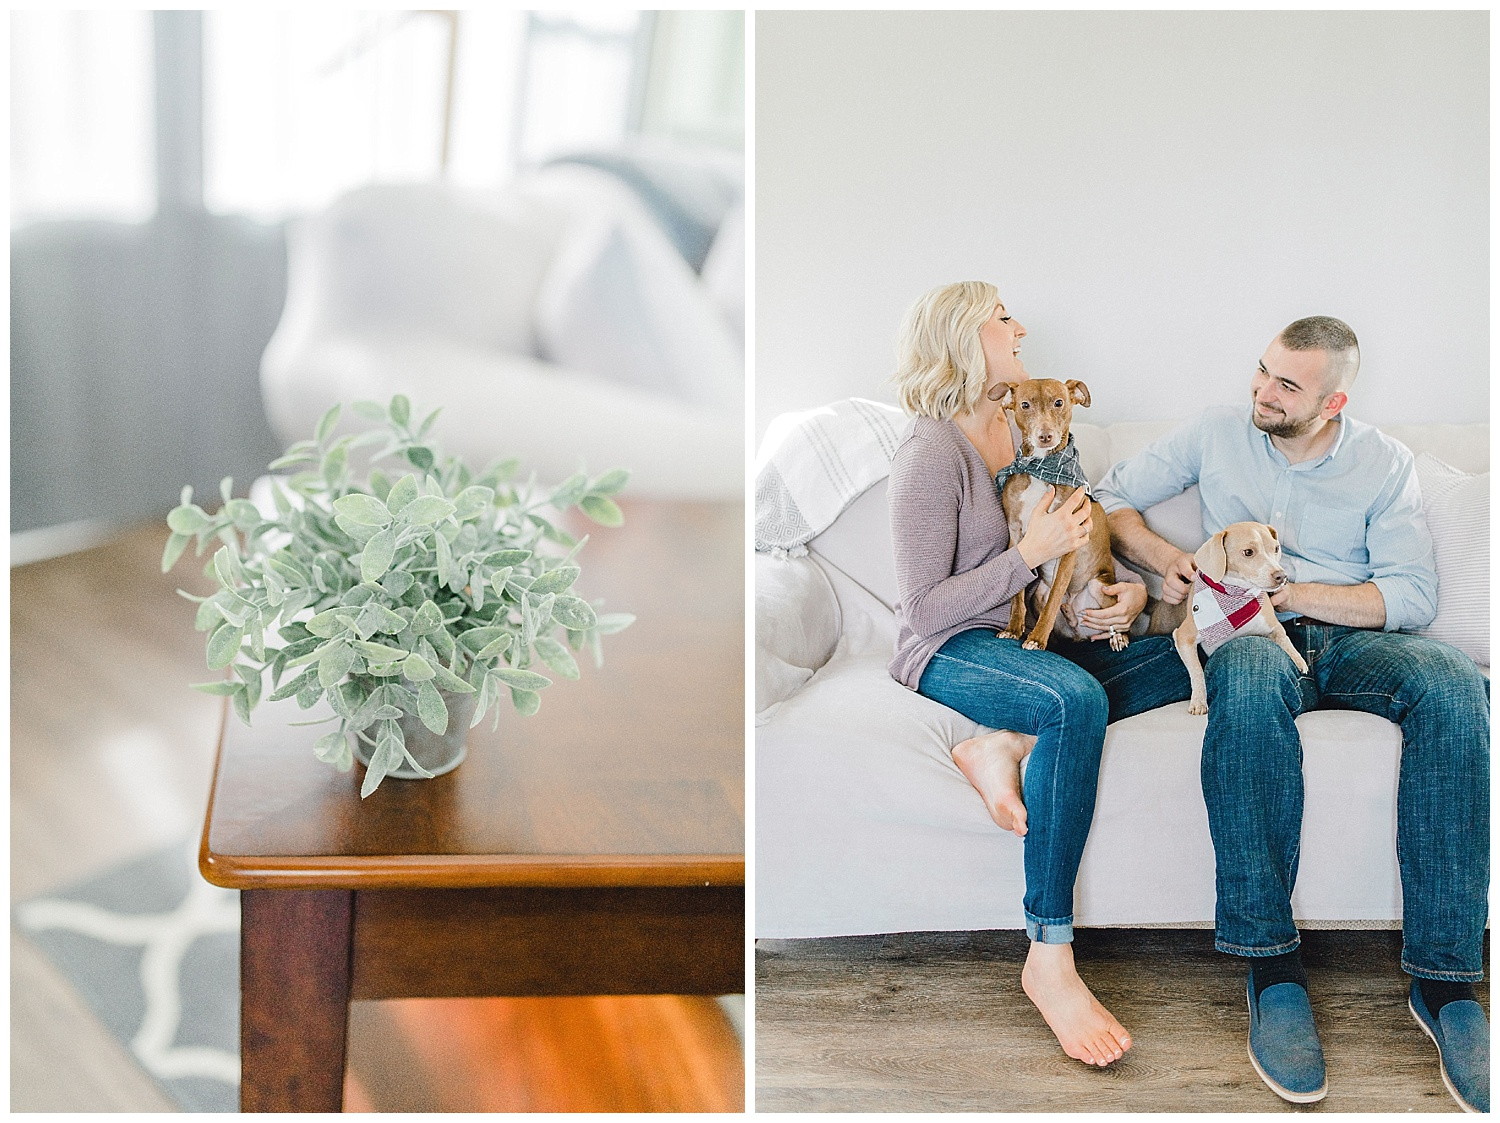 Emma Rose Company Branded Lifestyle Session | Seiler Home Group Real Estate Agents | Light and Airy Seattle and Portland Wedding Photographer | Real Estate Photo Shoot_0006.jpg